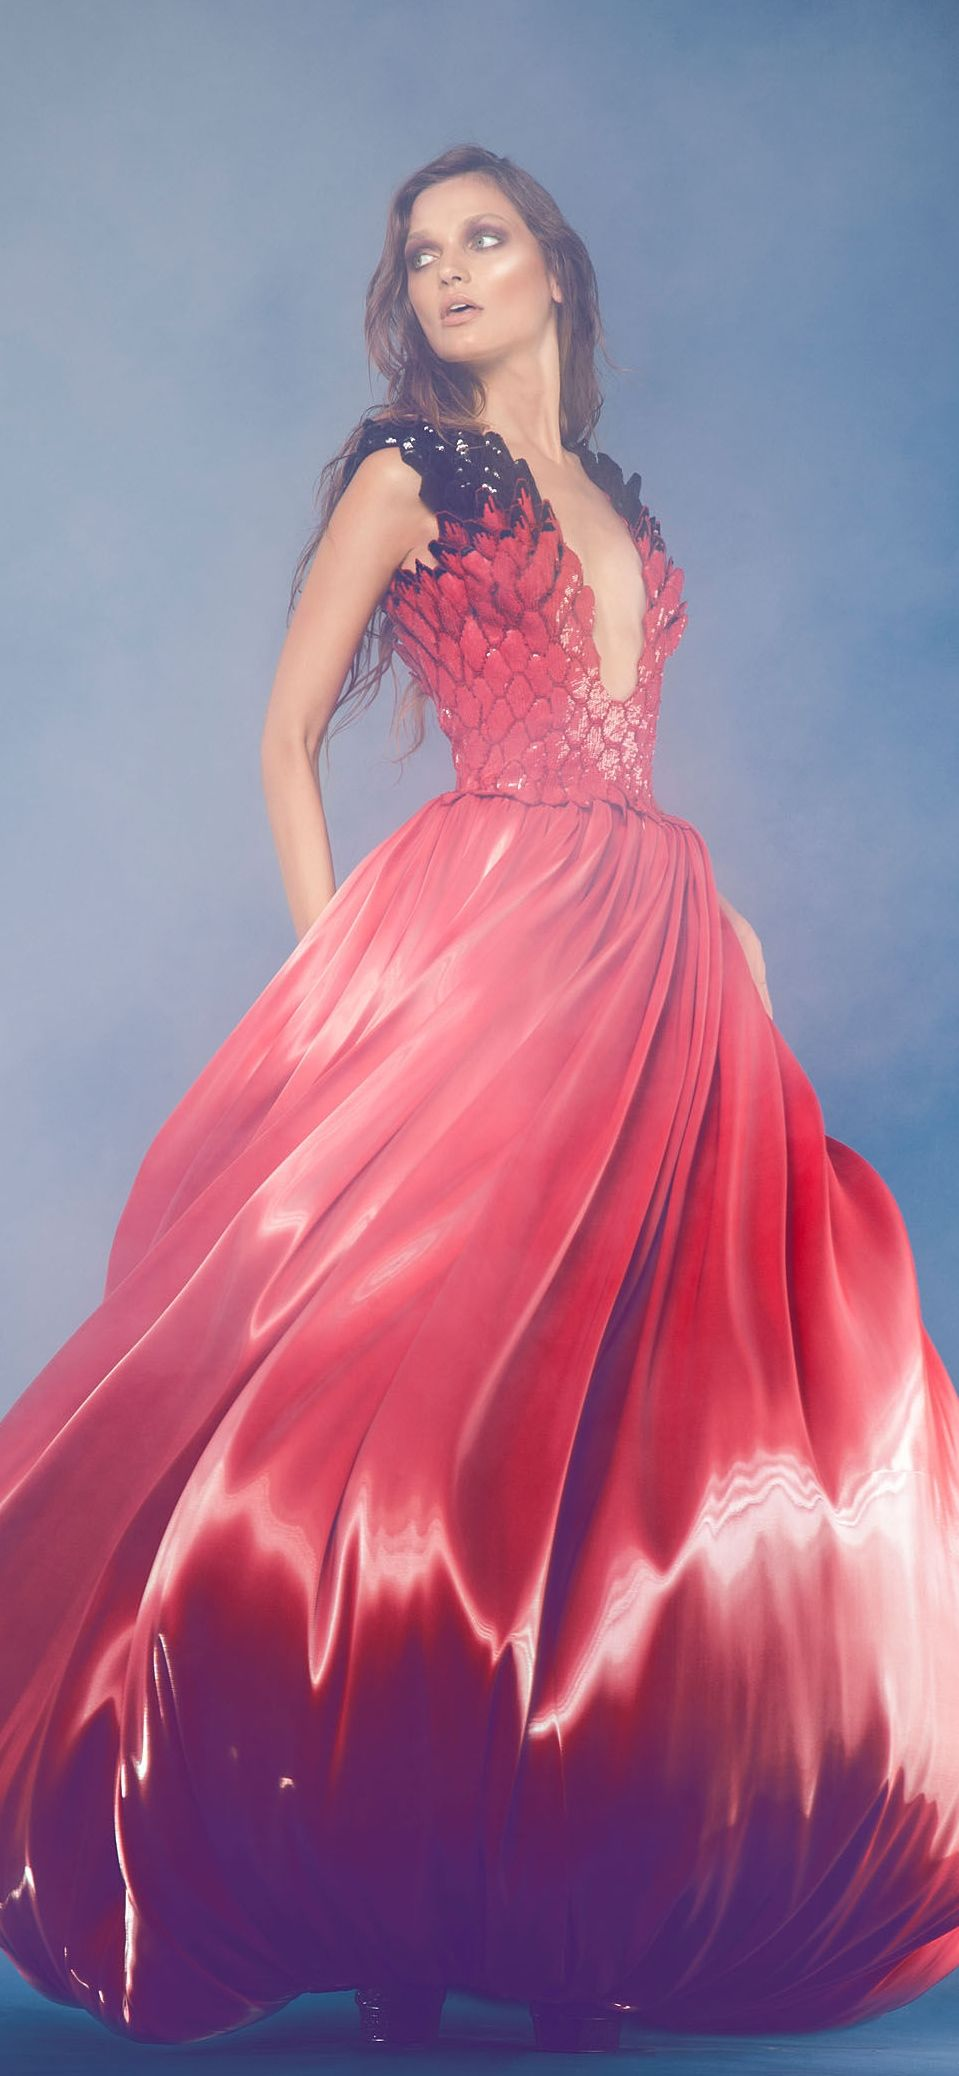 Jean louis sabaji couture fw red and black gown gowns